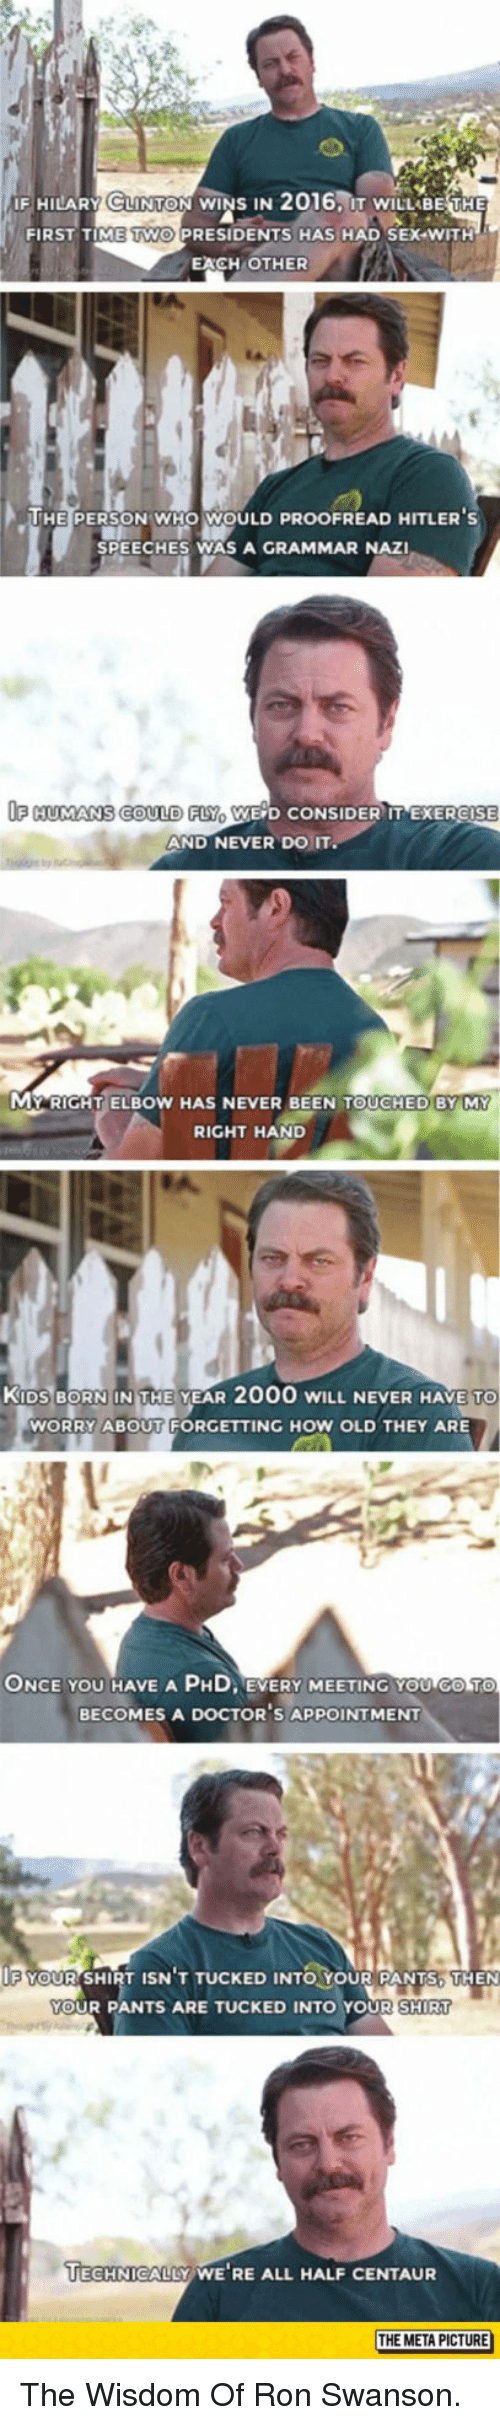 Ron Swanson, Sex, and Exercise: IF HILARY CLINTON WINS IN  2016, IT WILLABE THE  FIRST TIME TWO PRESIDENTS HAS HAD SEX WITH  EACH OTHER  HE PERSON WHO WOULD PROOFREAD HITLER S  SPEECHES WAS A GRAMMAR NAZI  FHUMANS COULD FLYo WE D CONSIDER IT EXERCISE  AND NEVER DO IT  MY RIGHT ELBOW HAS NEVER BEEN TOUCHED BY MY  RIGHT HAND  KİDSBORN:IN THE YEAR 2000 WILL NEVER HAVE  TO  WORRY ABOUT FORGETTING HOW OLD THEY ARE  ONCE YOU HAVE A PHD EVERY MEETING YOU COTO  BECOMES A DOCTOR'S APPOINTMENT  F YOUR SHIRT ISN T TUCKED INTO YOUR PANTS. THEN  YOUR PANTS ARE TUCKED INTO YOUR SHIRT  UIECHNICALLY WE RE ALL HALF CENTAUR  THE META PICTURE <p>The Wisdom Of Ron Swanson.</p>